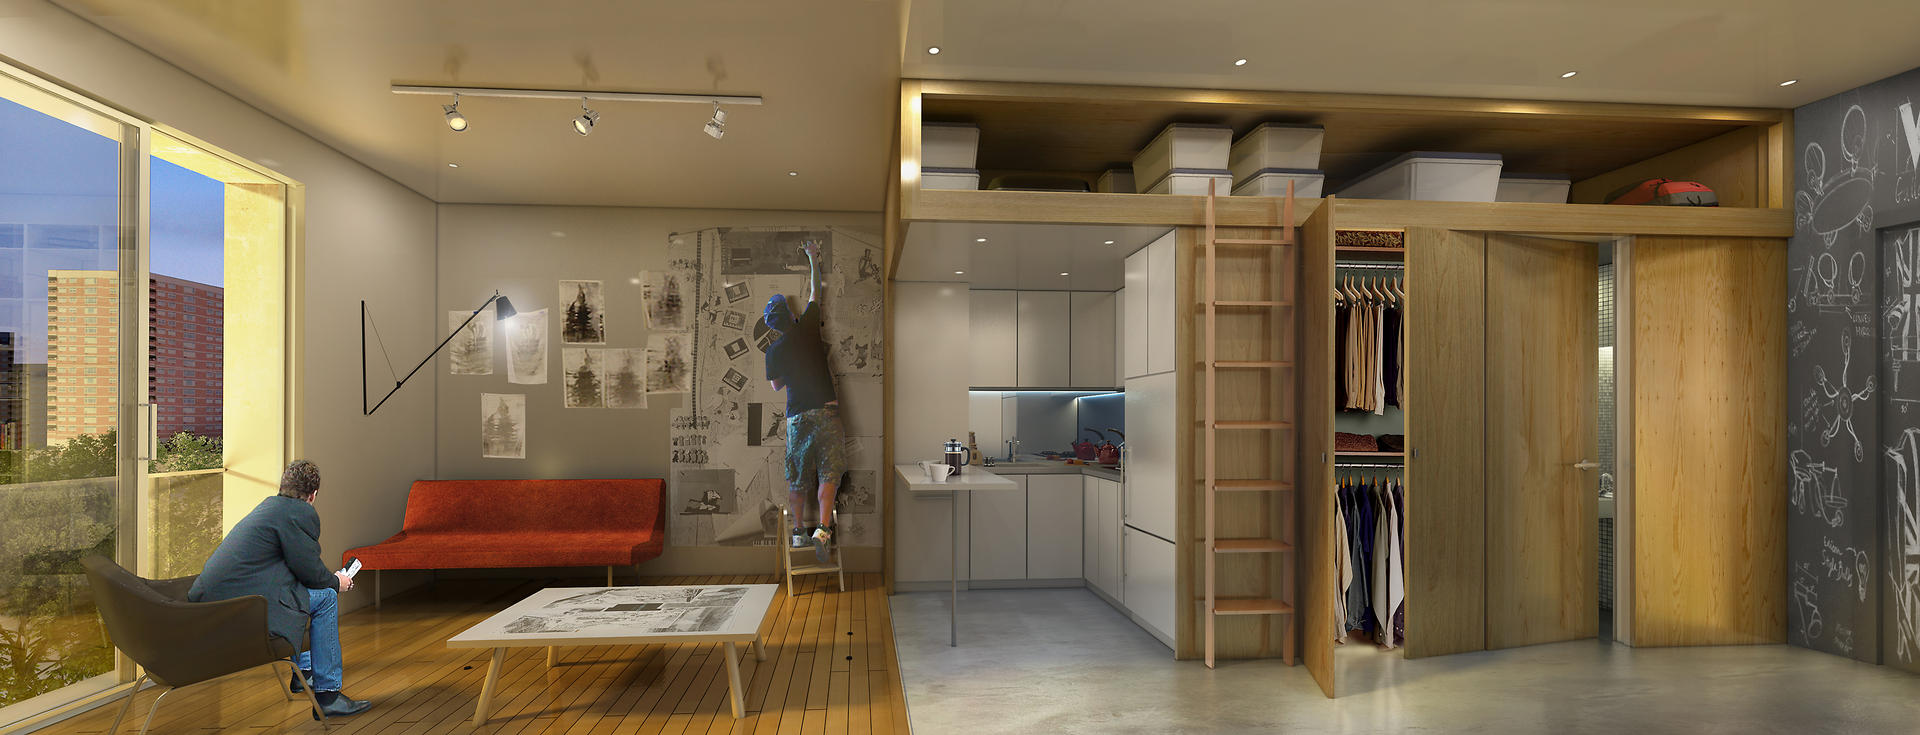 Hong Kong style Microflats Arrive In The US South China